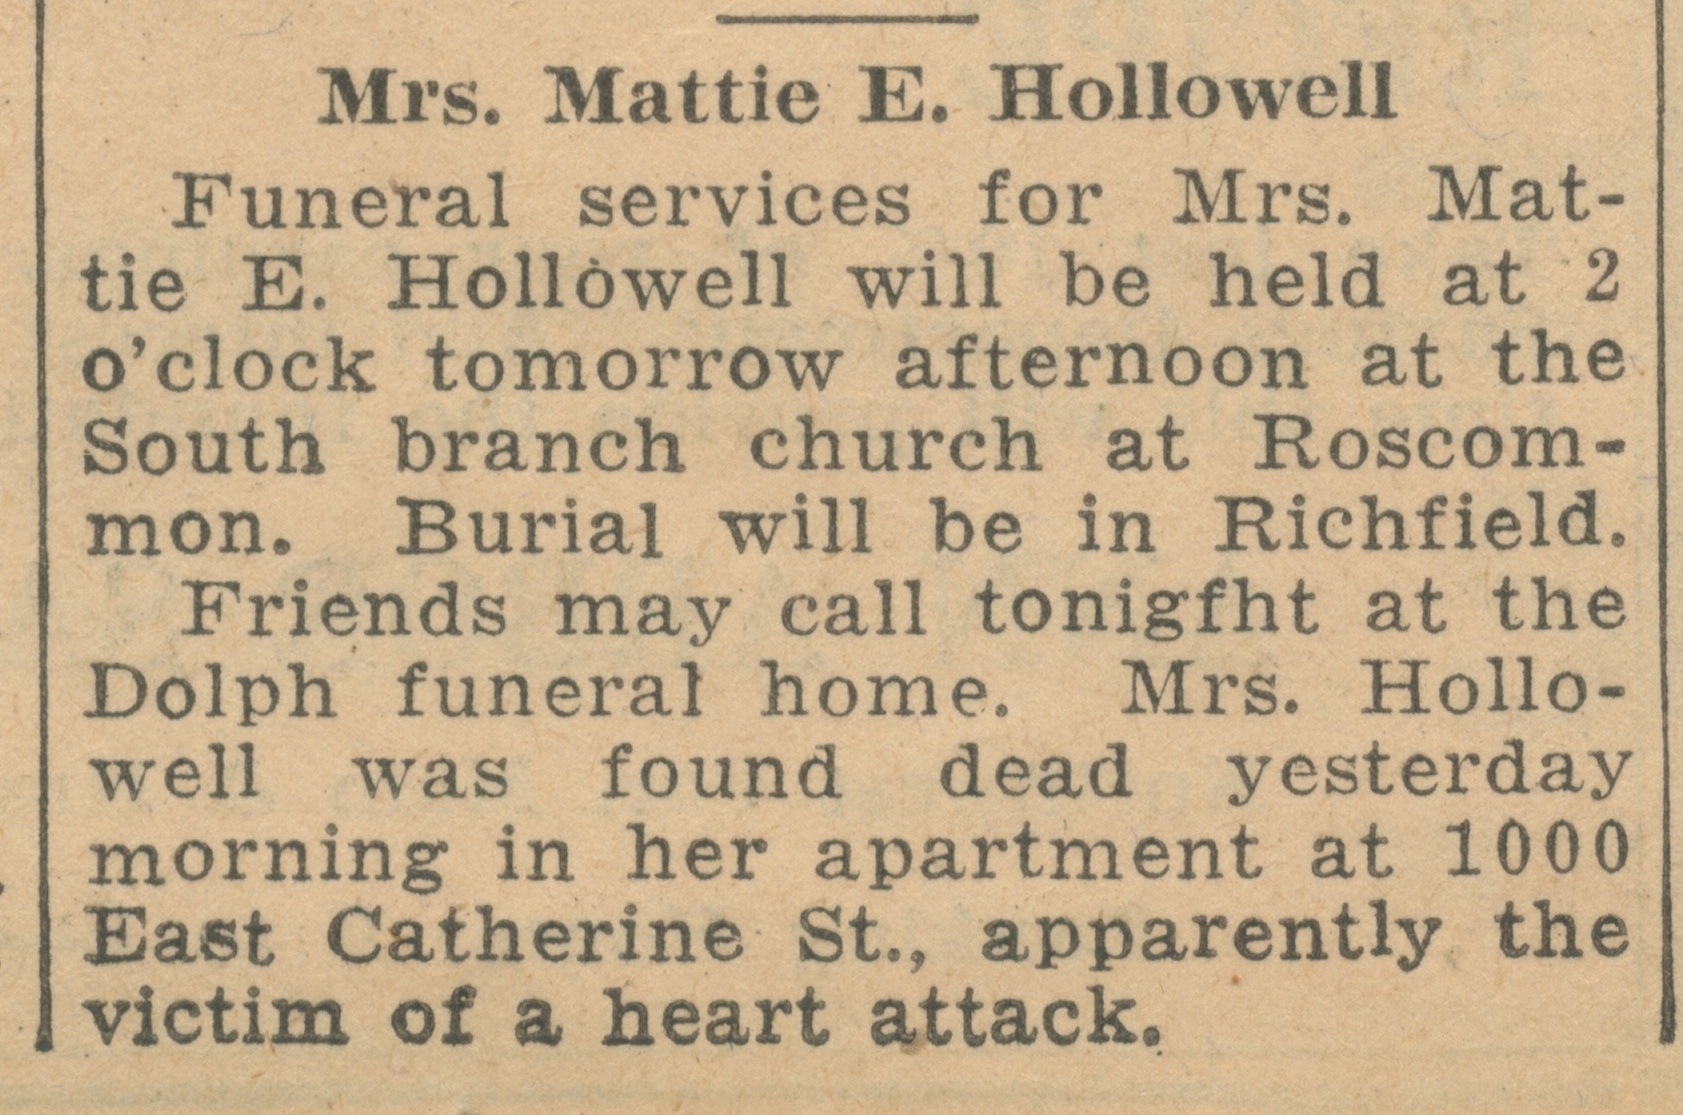 Mrs. Mattie E. Hollowell image